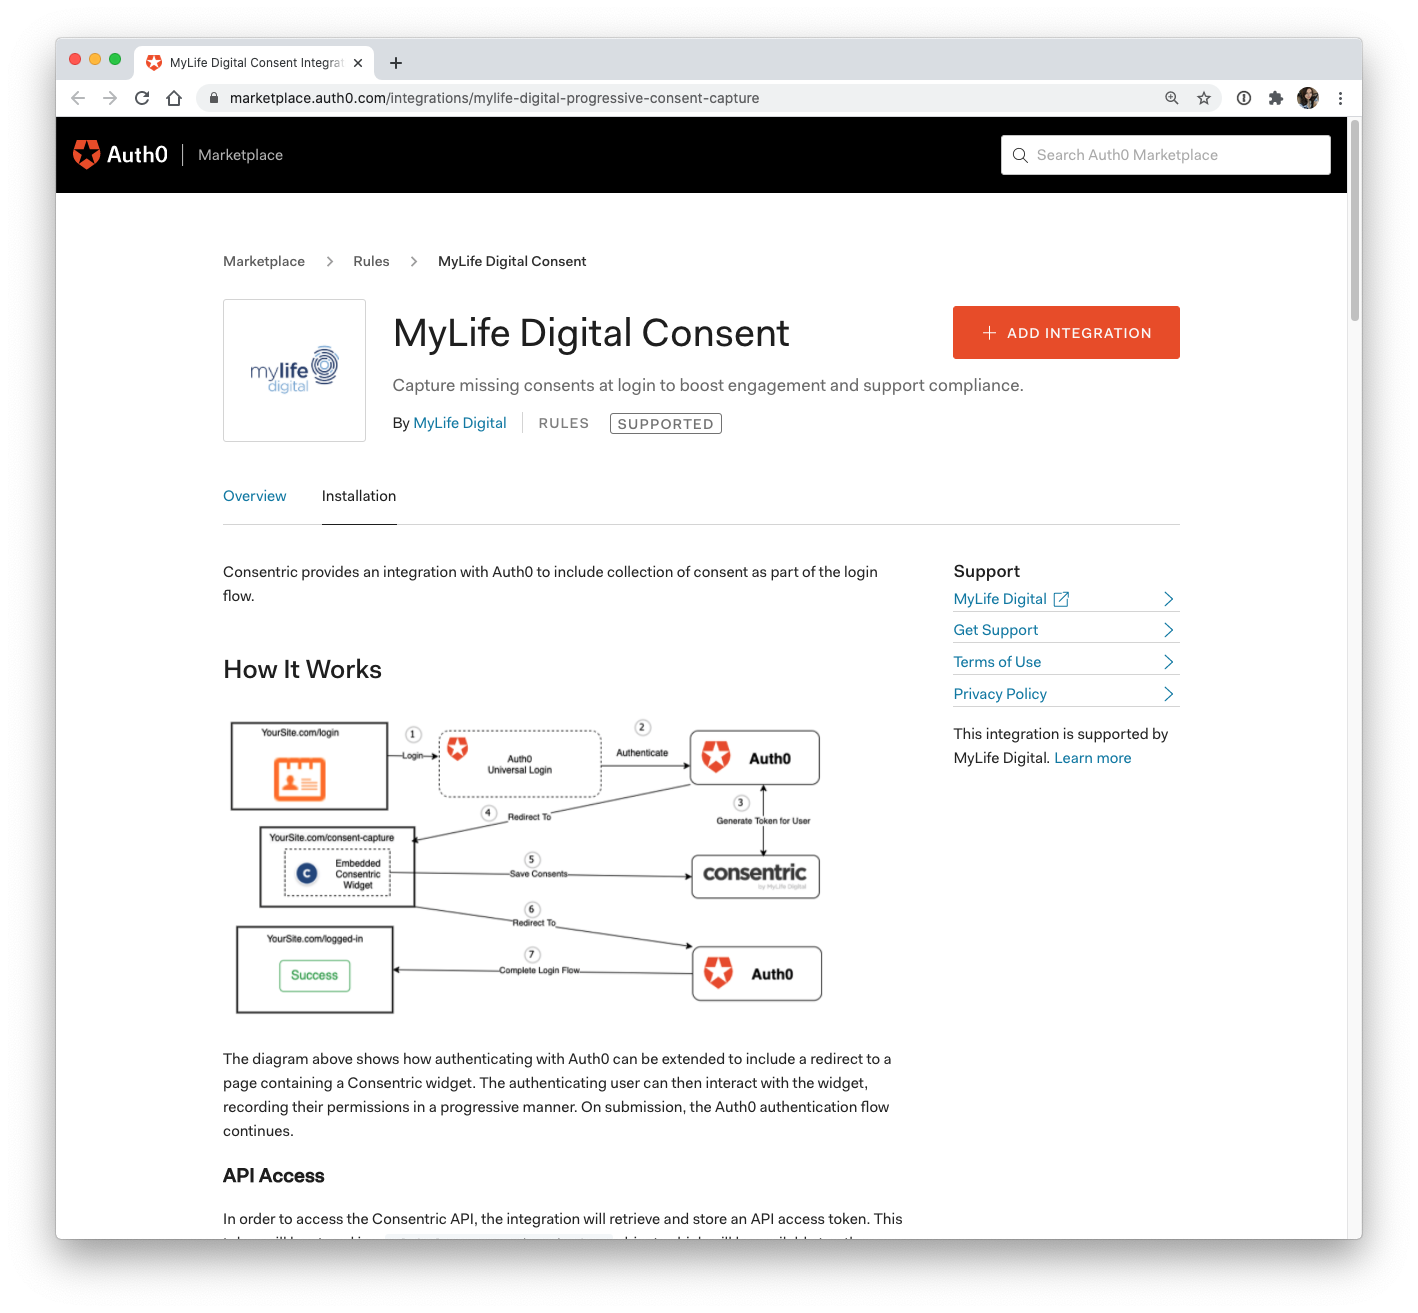 MyLife Digital Auth0 Marketplace integration